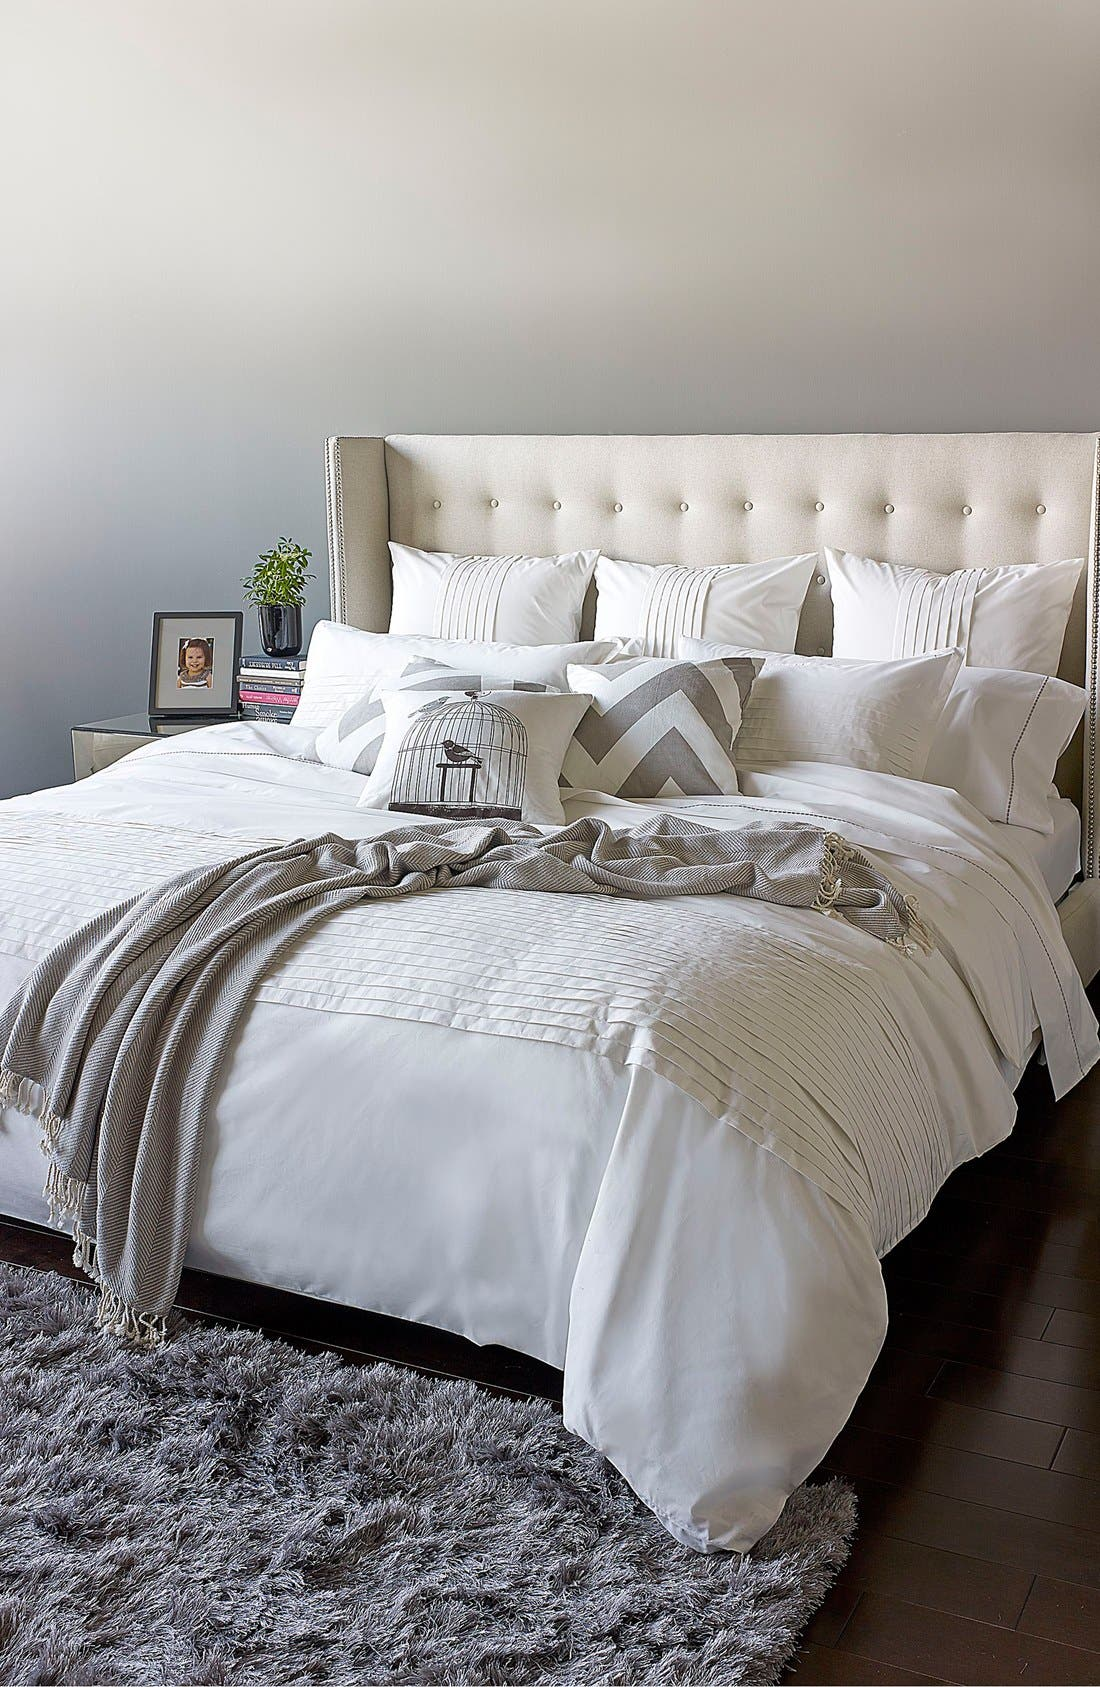 zestt Organic Cotton 'Block Island' Bedding Collection